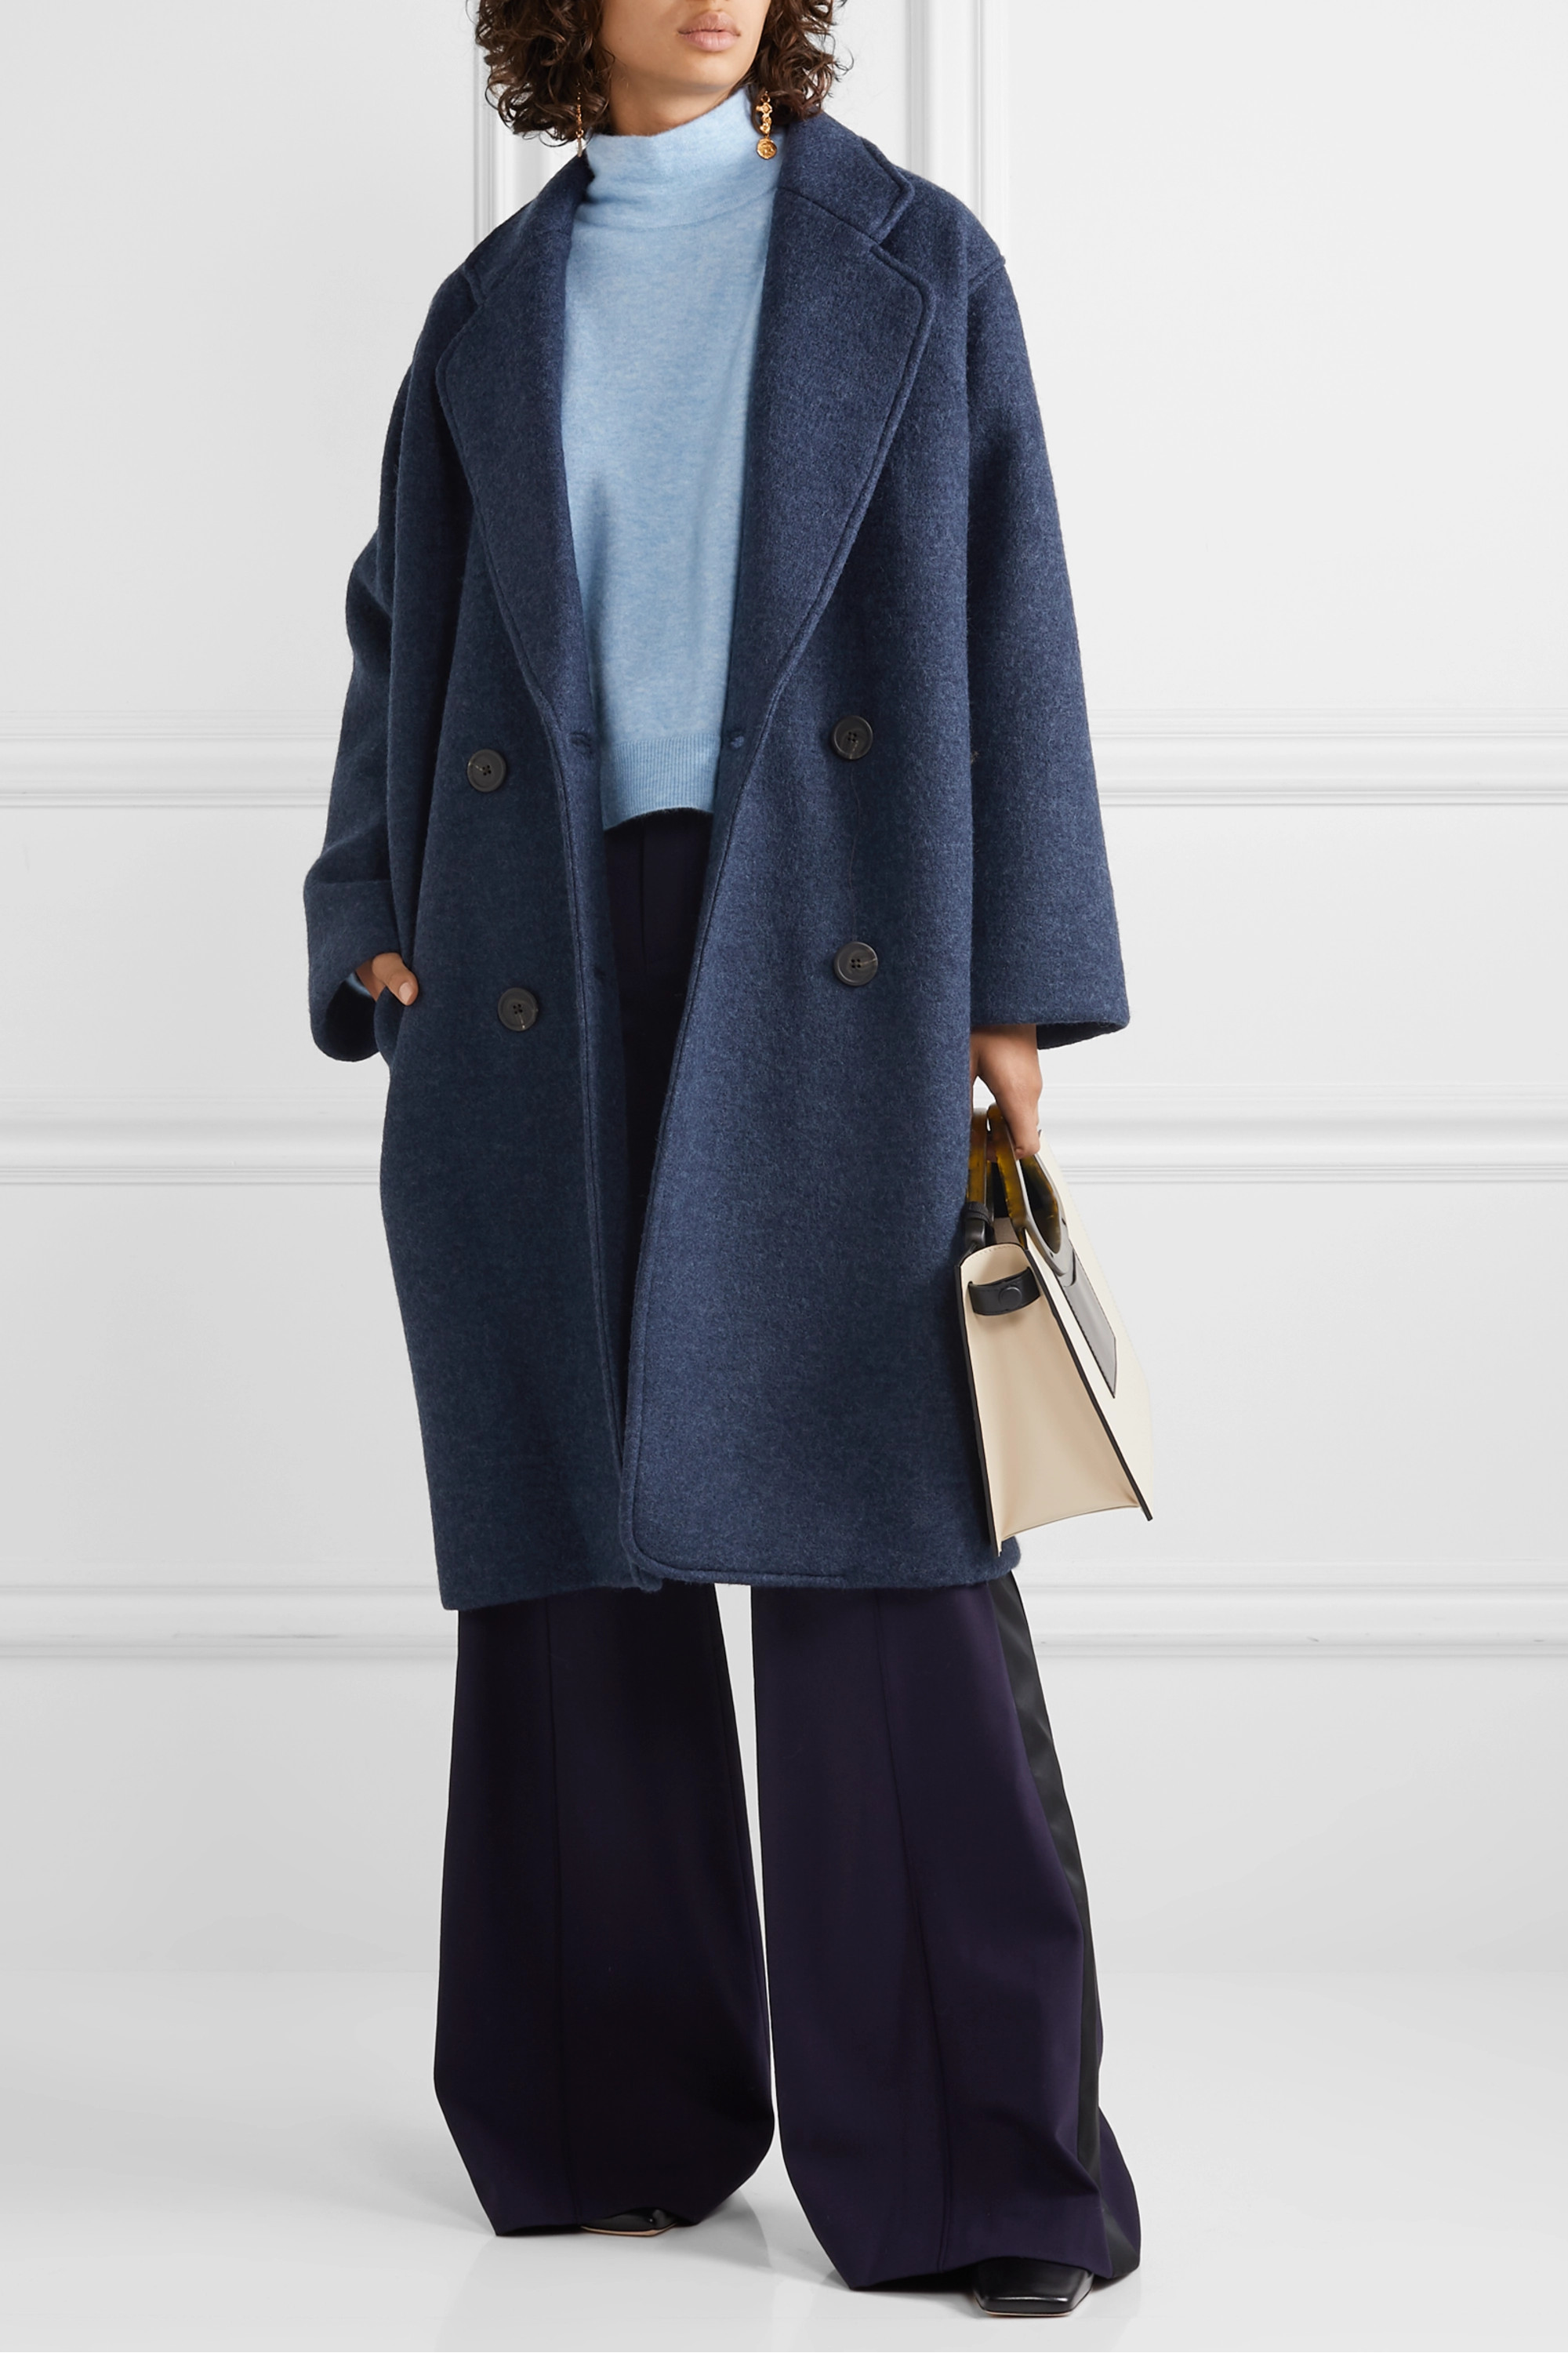 Mara Hoffman Clementine oversized double-breasted wool coat